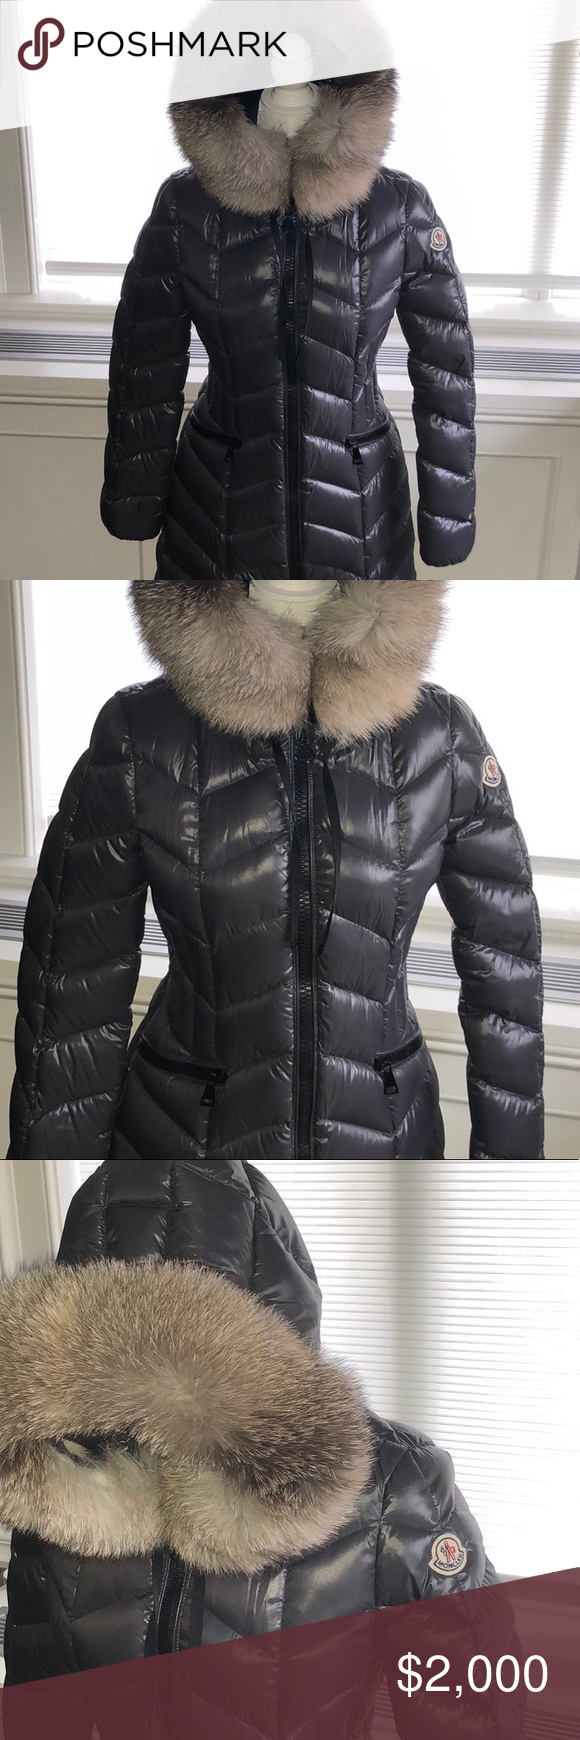 Moncler Long Down Jacket🌪 Jackets, Down jacket, Clothes